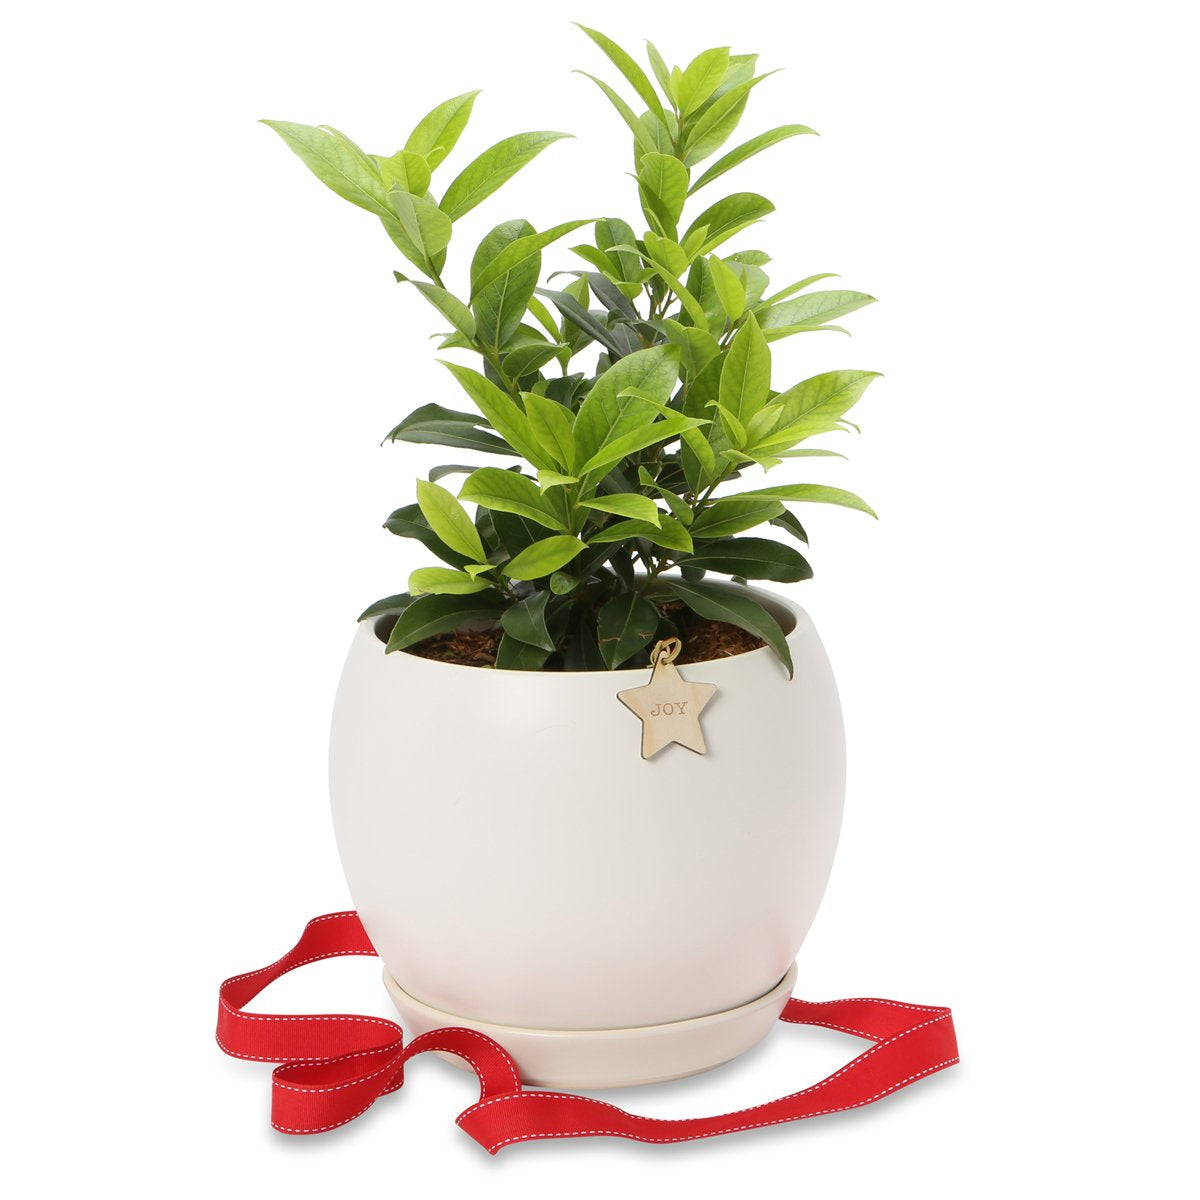 Potted Christmas Bay laurel trees